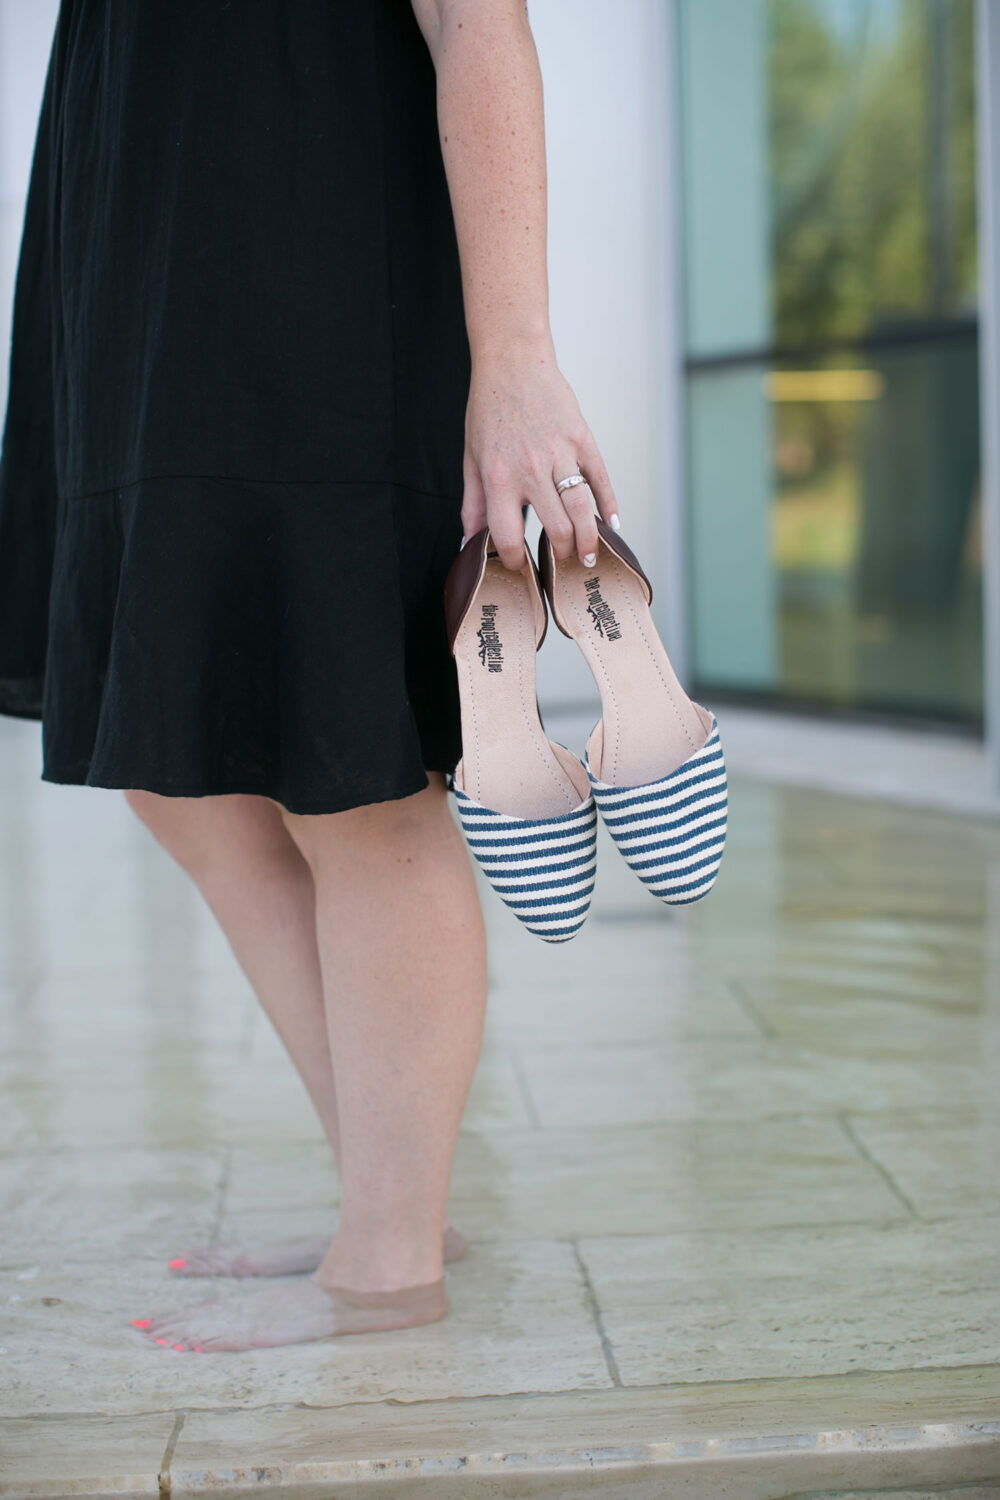 These striped flats by The Root Collective are comfortable and help support artisans in impoverished communities!